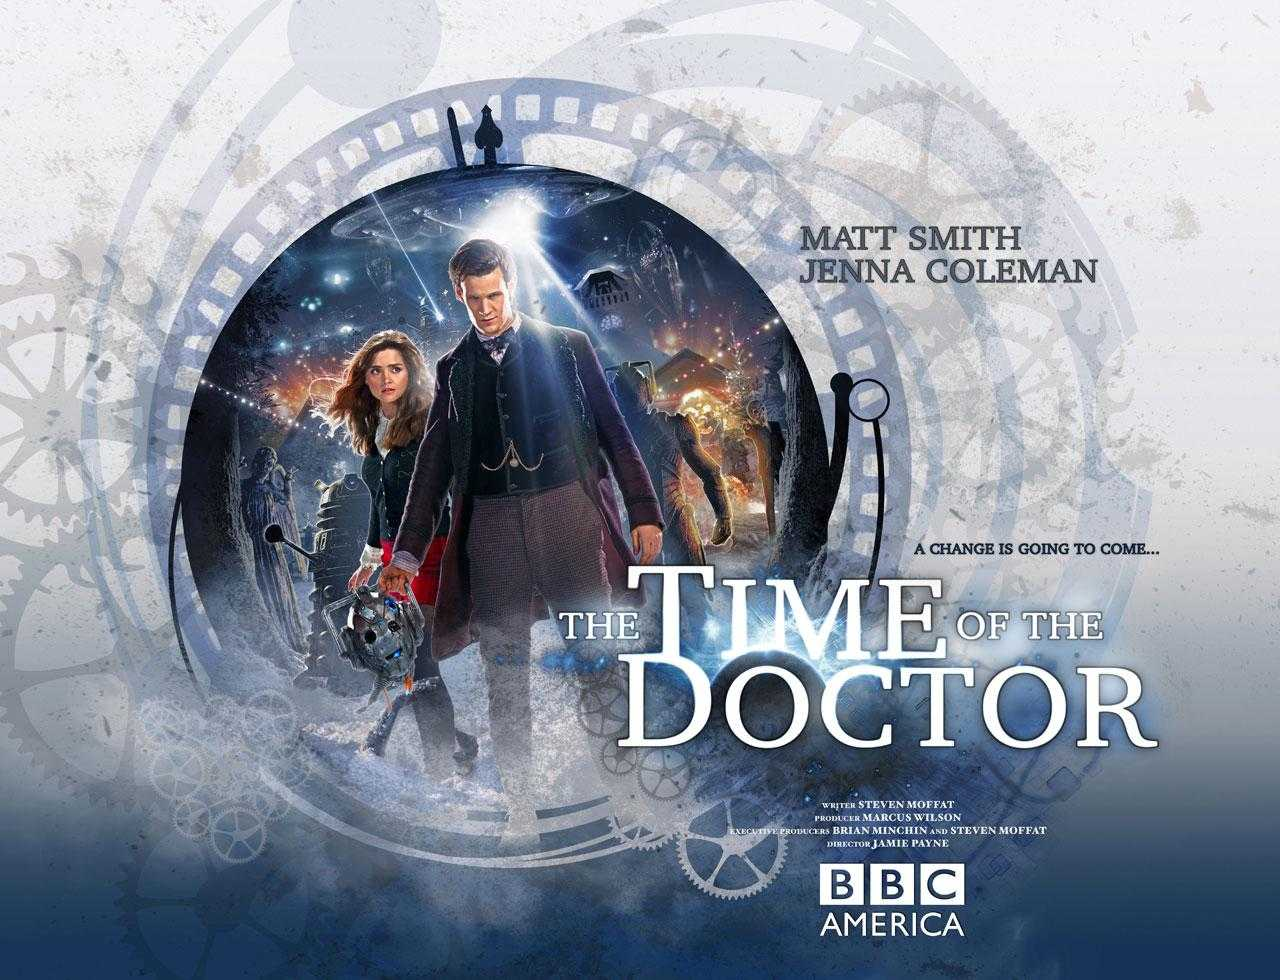 Prepare To Say Goodbye To Eleven As The Full Trailer For The Time Of The Doctor Is Released